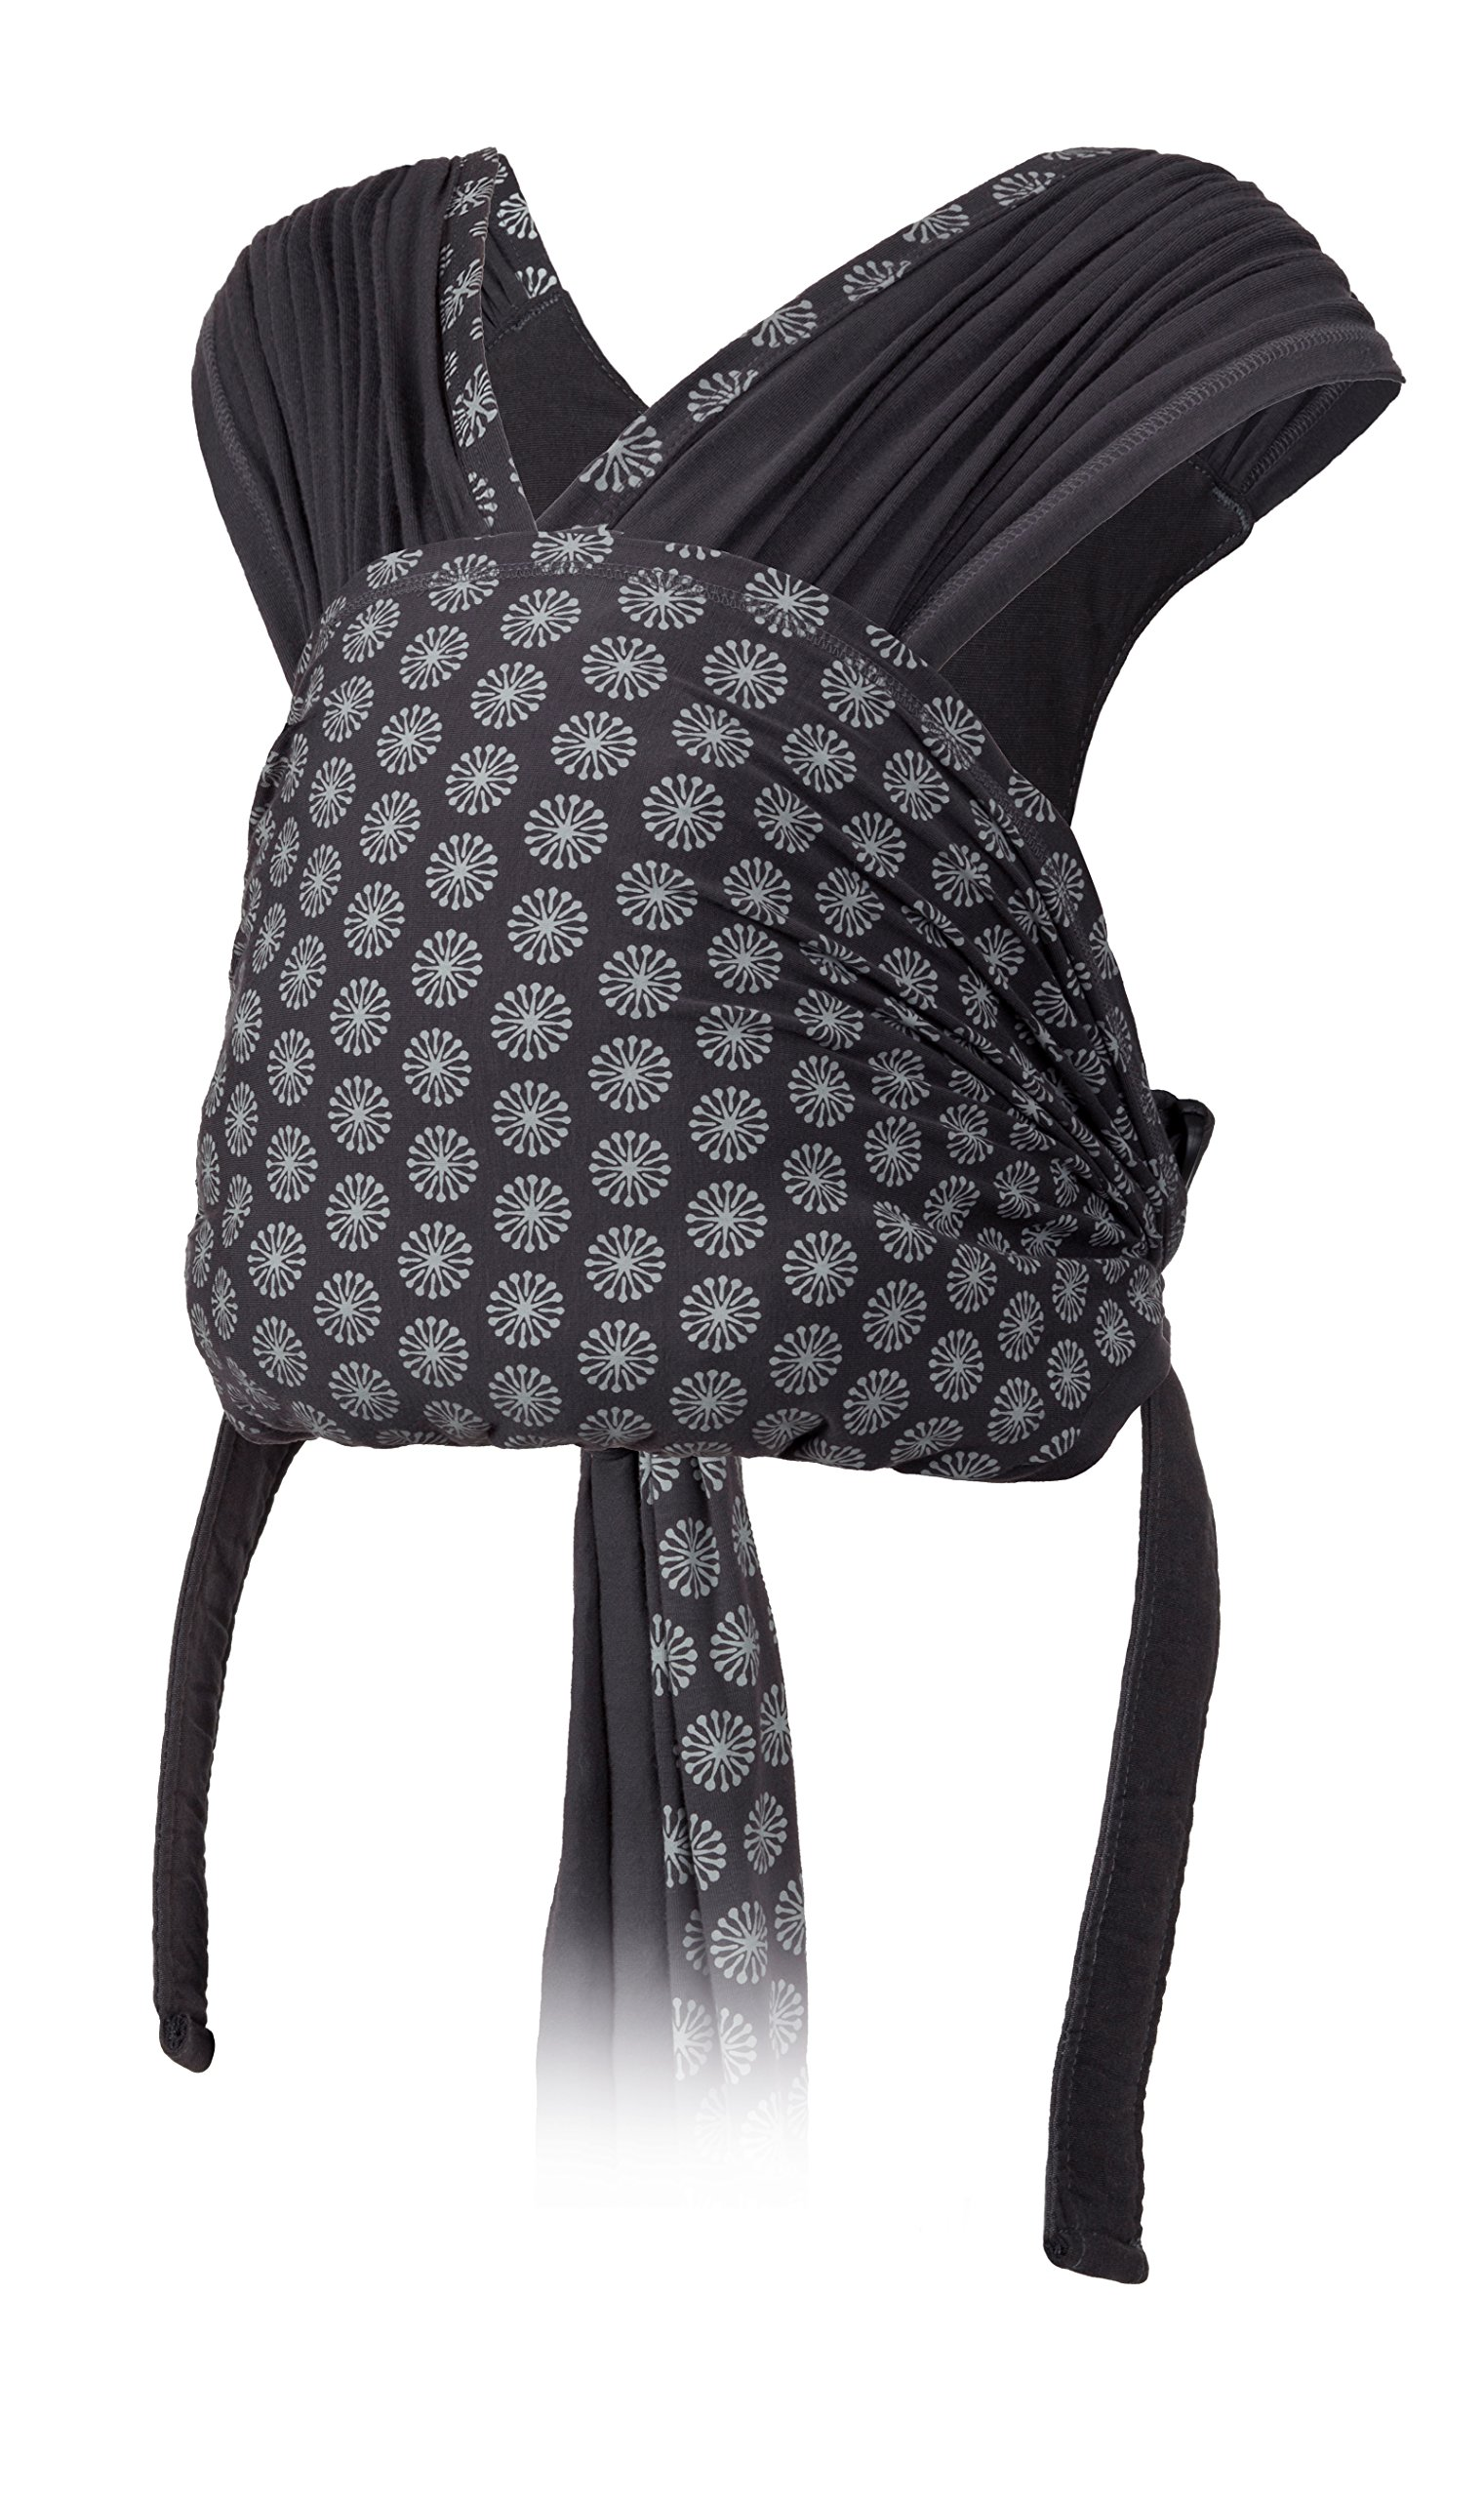 Infantino Together Pull On Knit Carrier